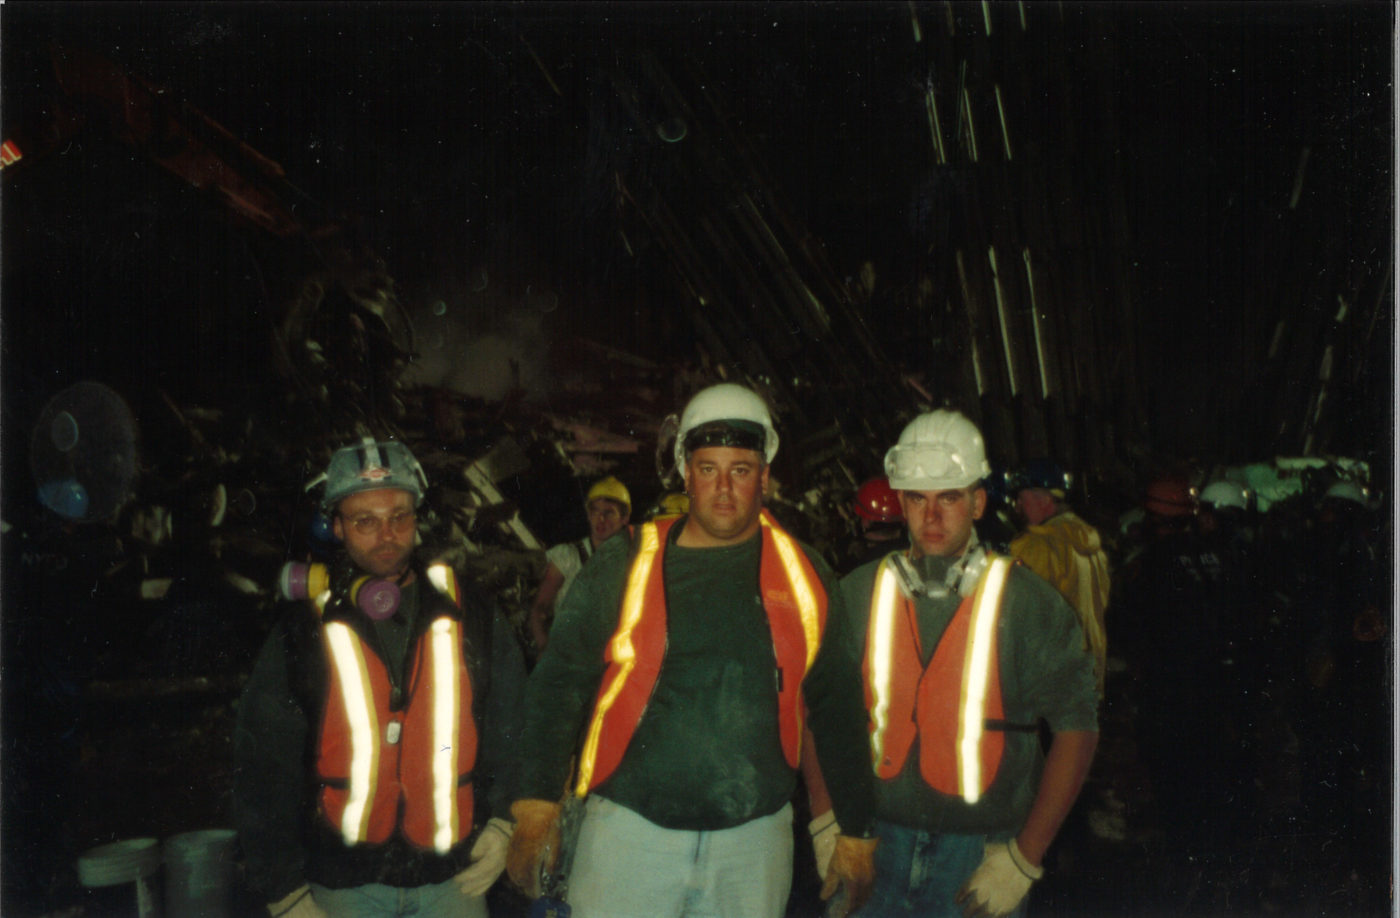 Three Unknown Workers Take a Photo at Night at Ground Zero